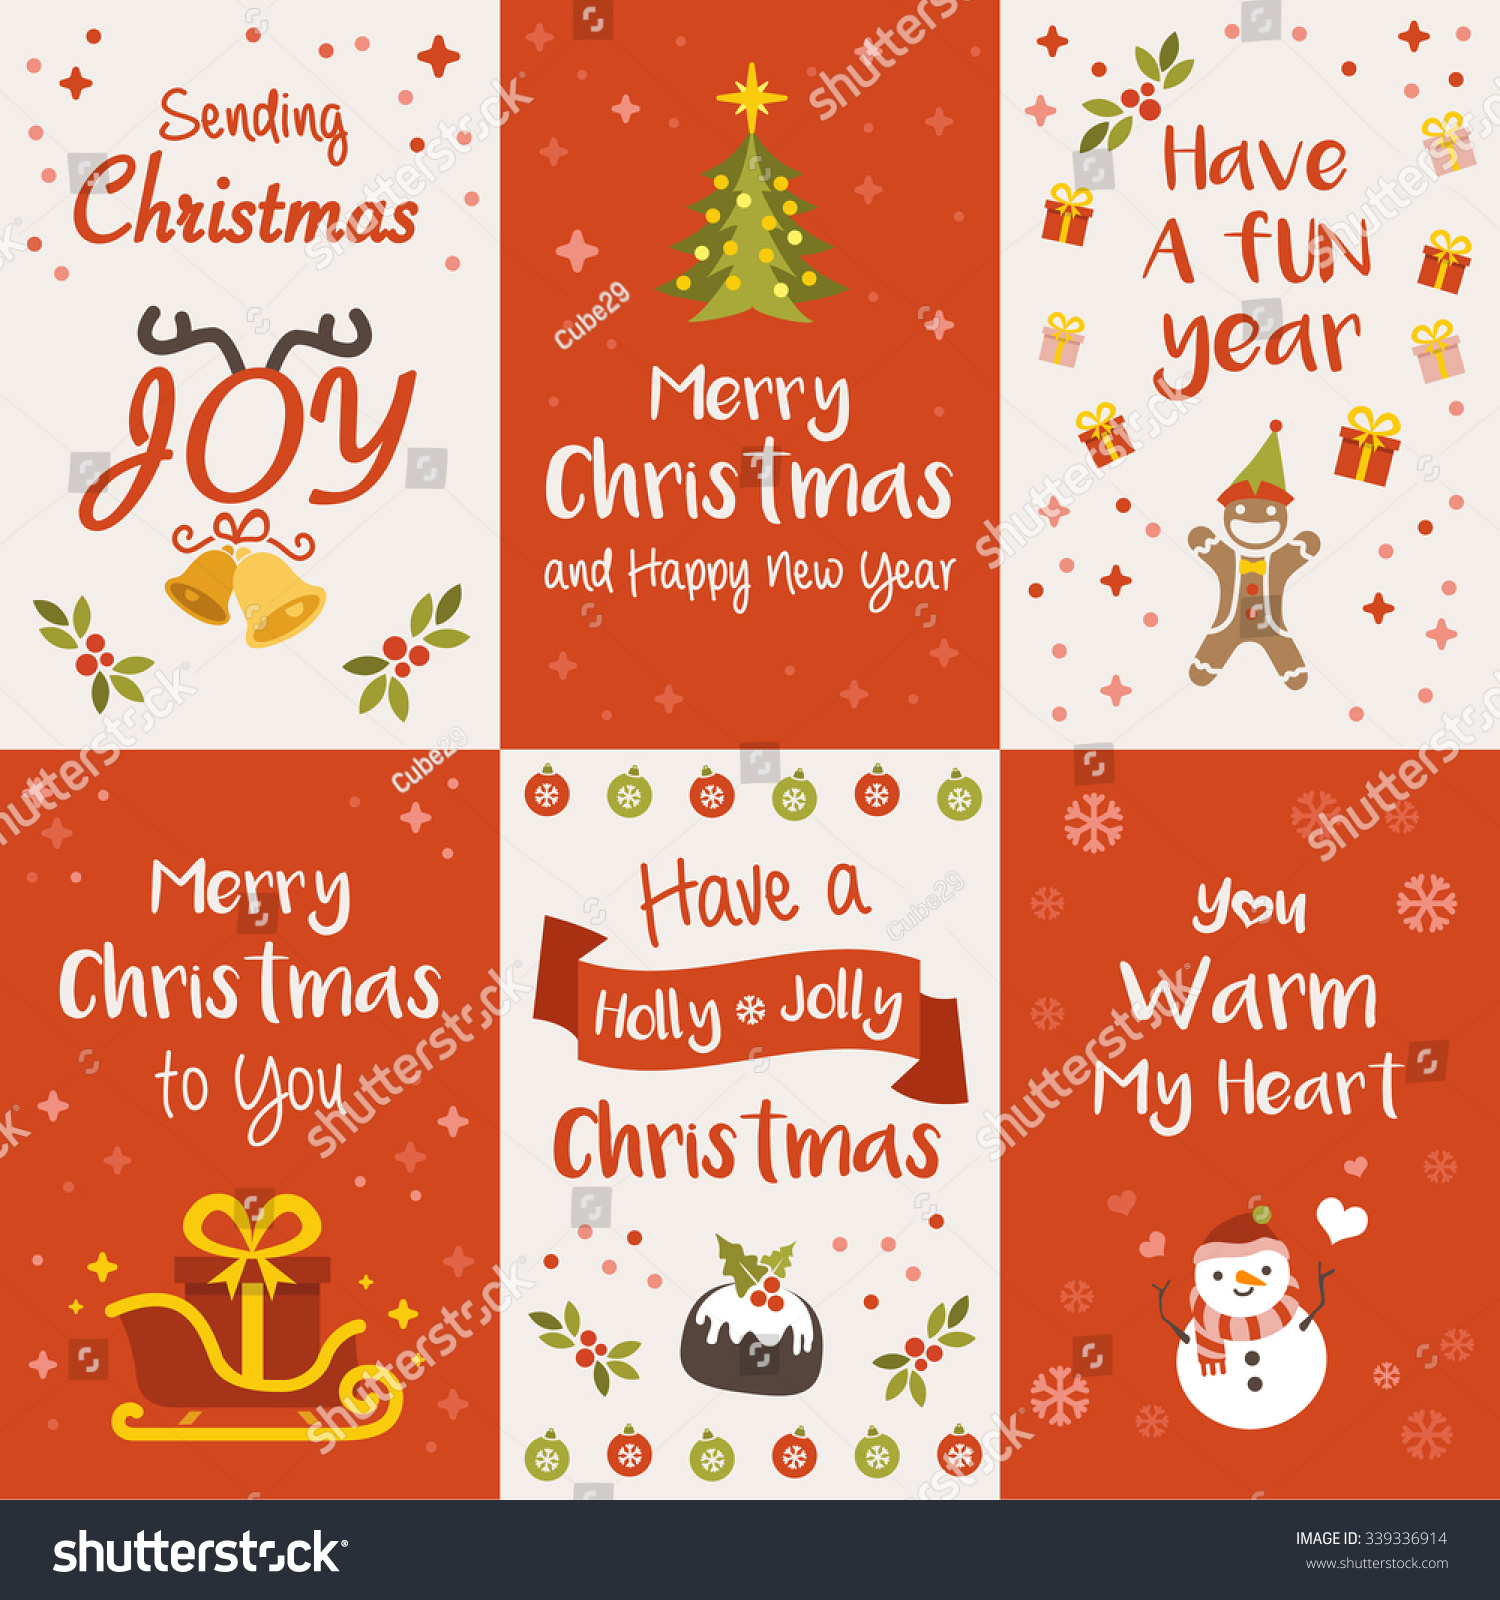 Christmas Greeting Cards Vector Illustration Stock Vector Hd